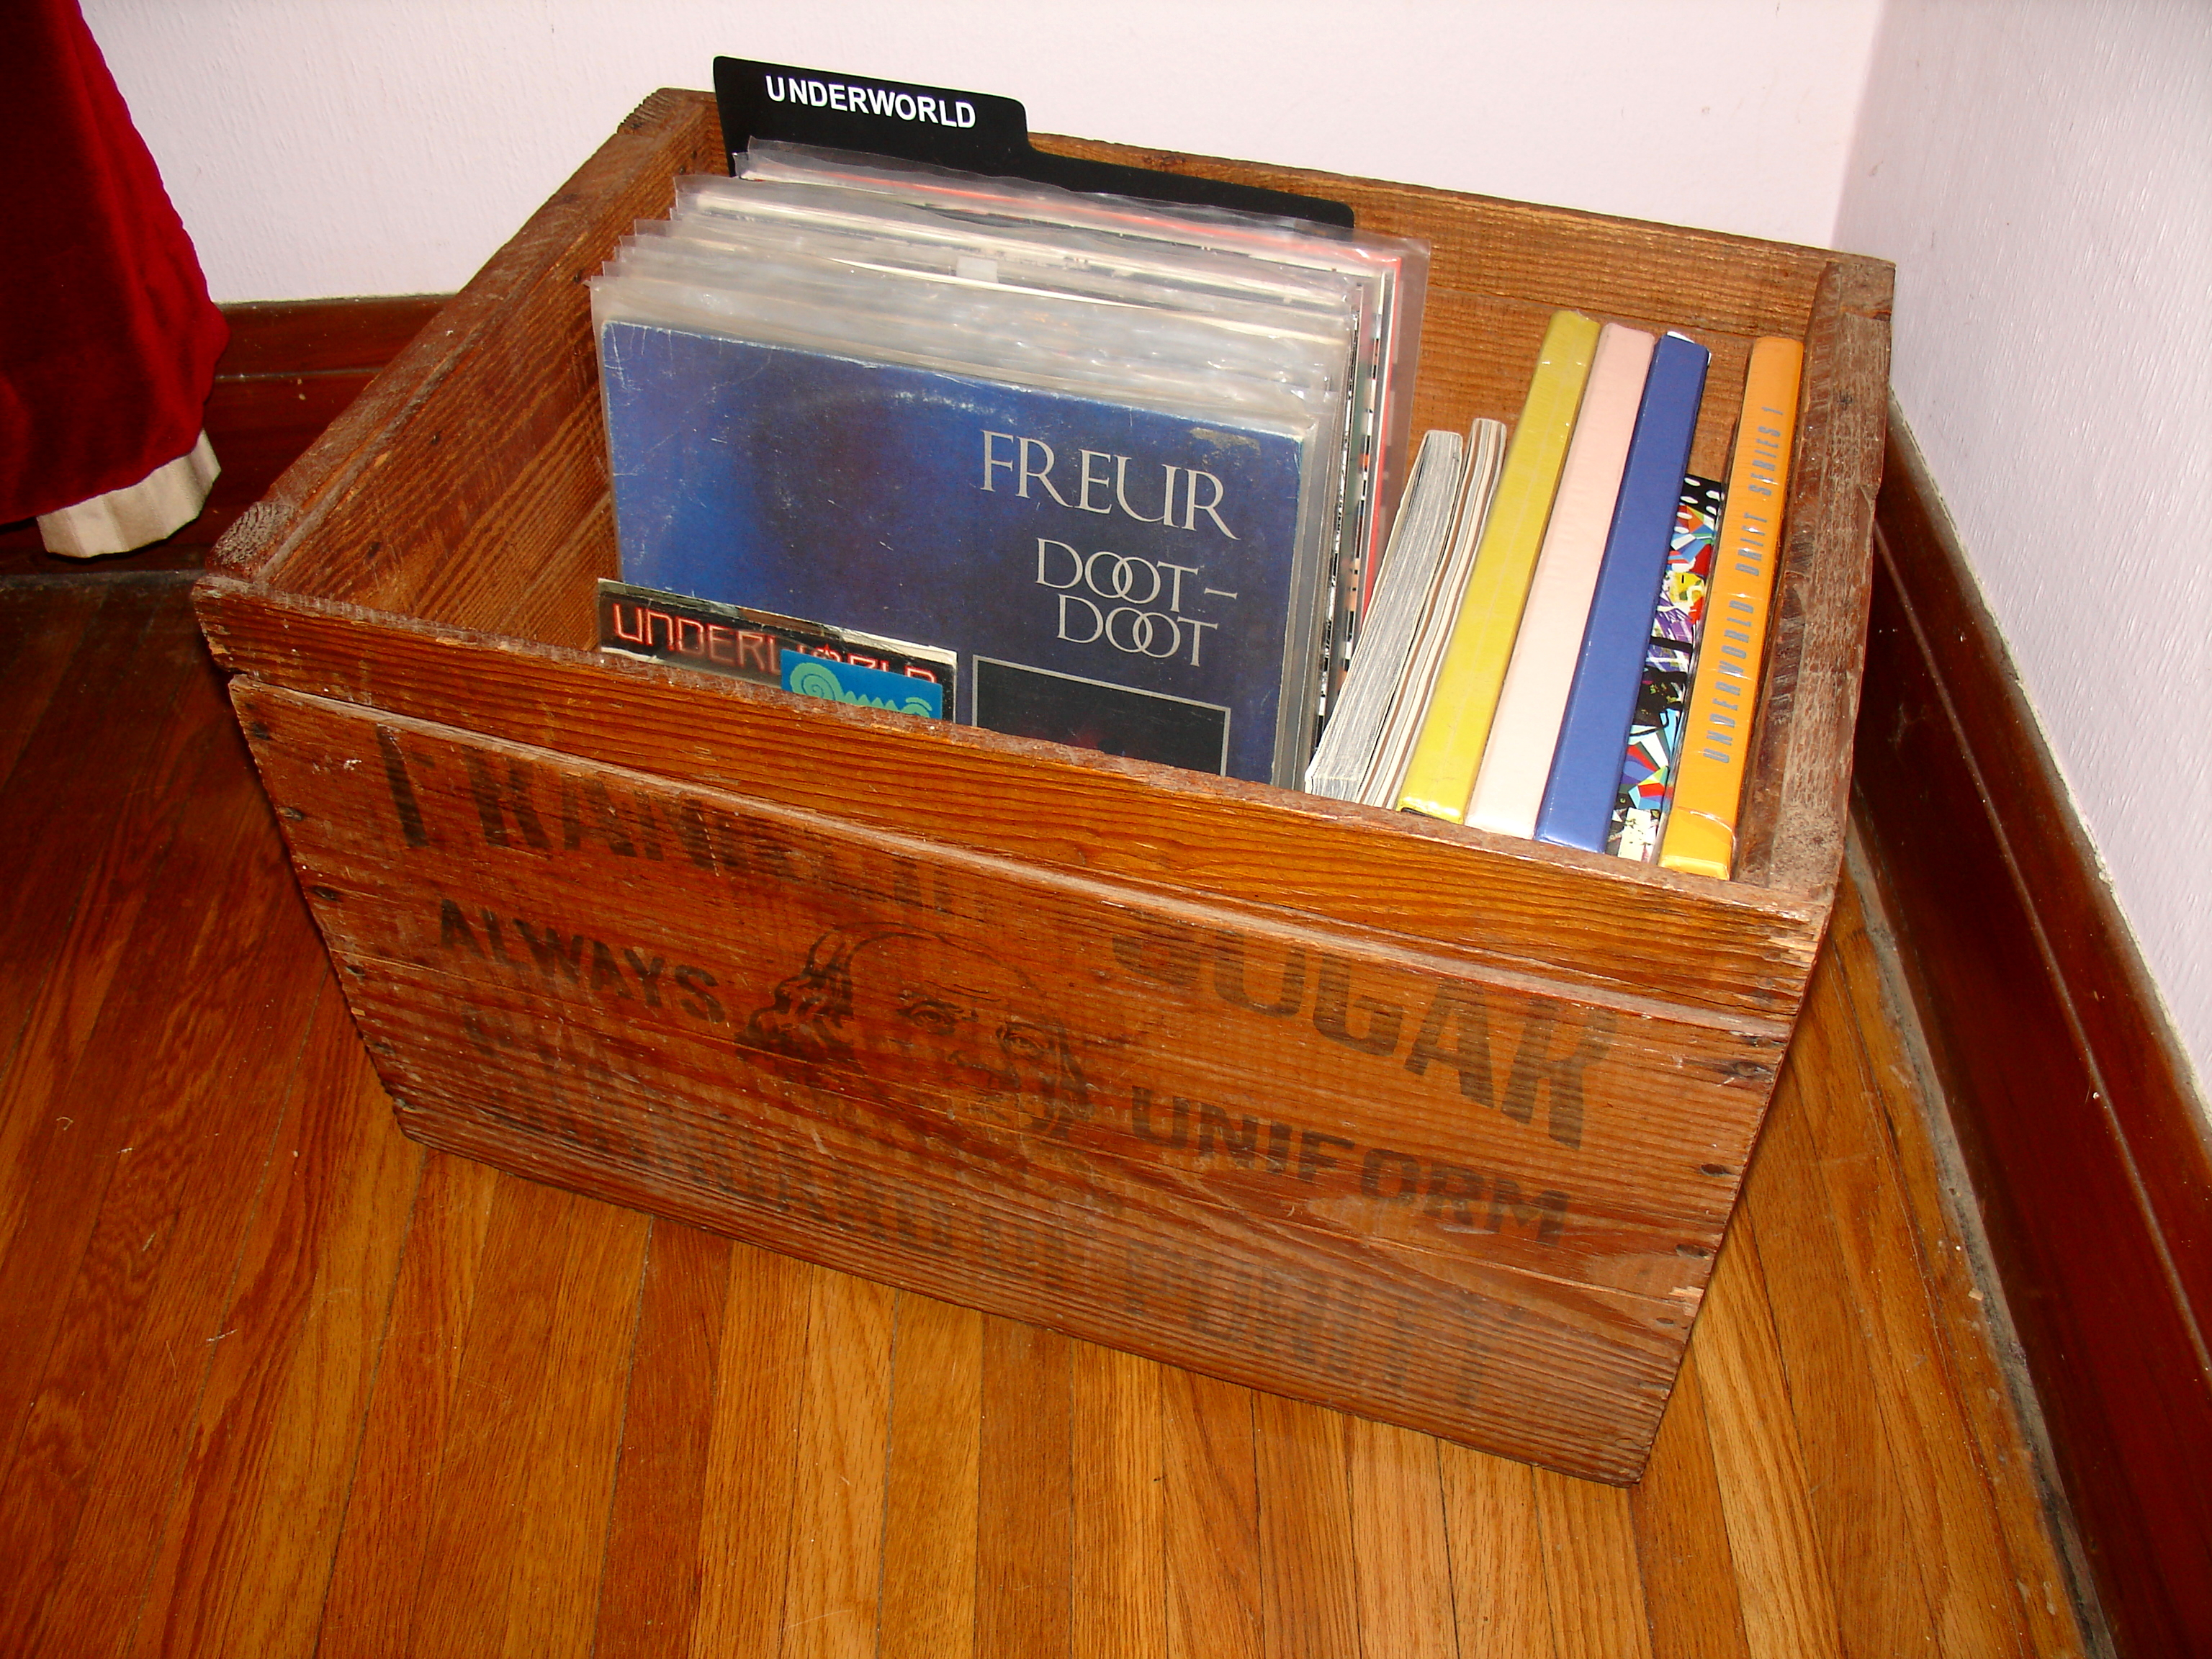 Ben Franklin Wooden Crate with Underworld Collection Inside 02-22-2020